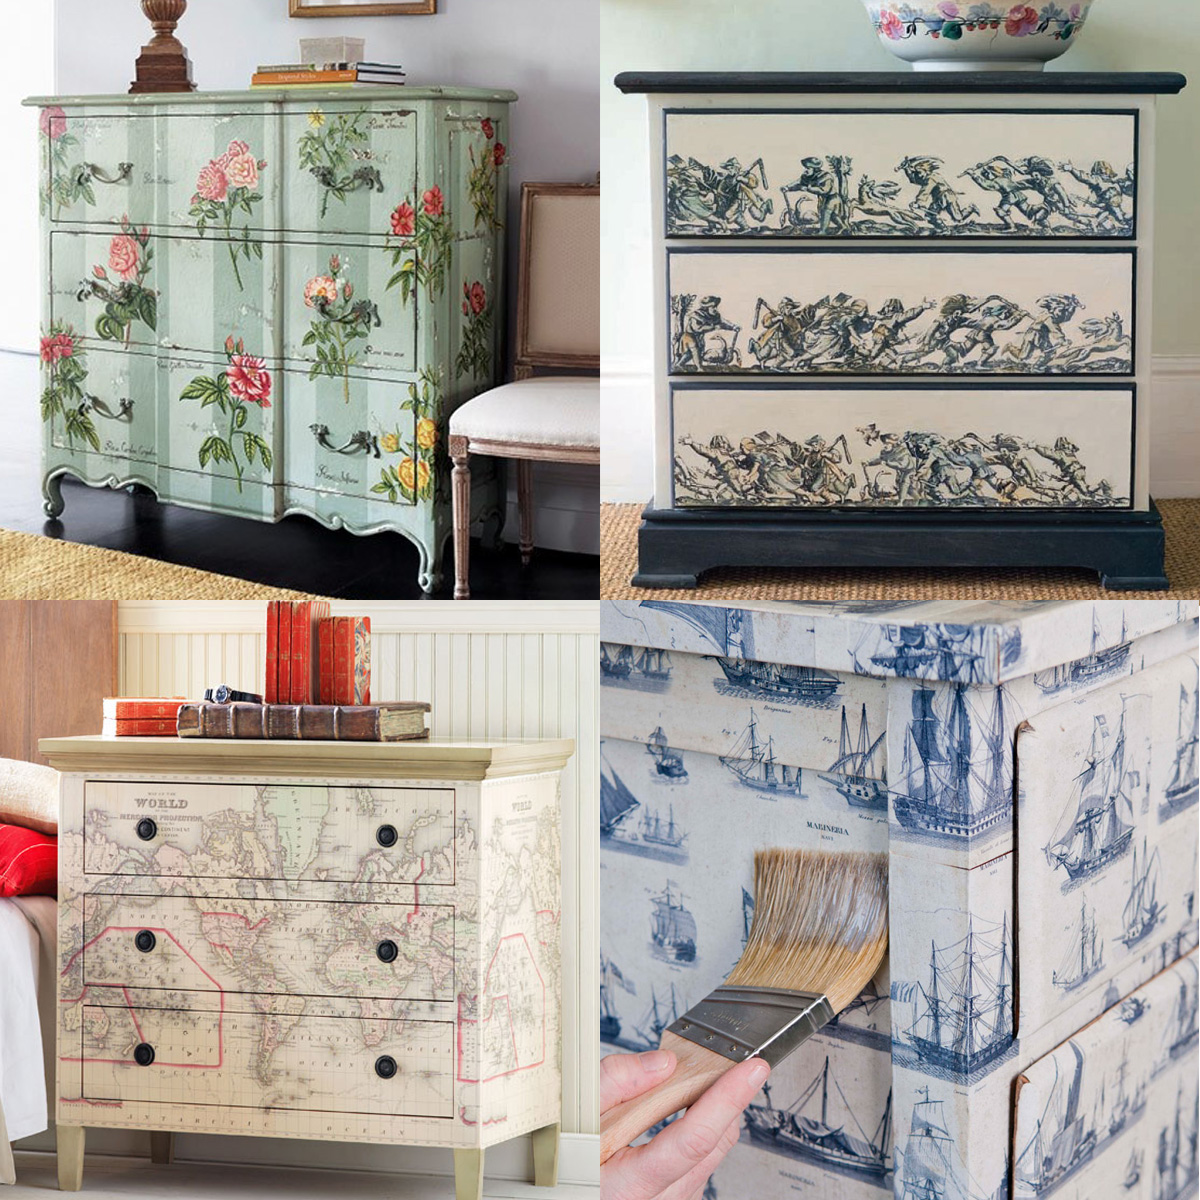 Mod podge furniture decoupaged on pinterest decoupage - Decoupage mobili ...